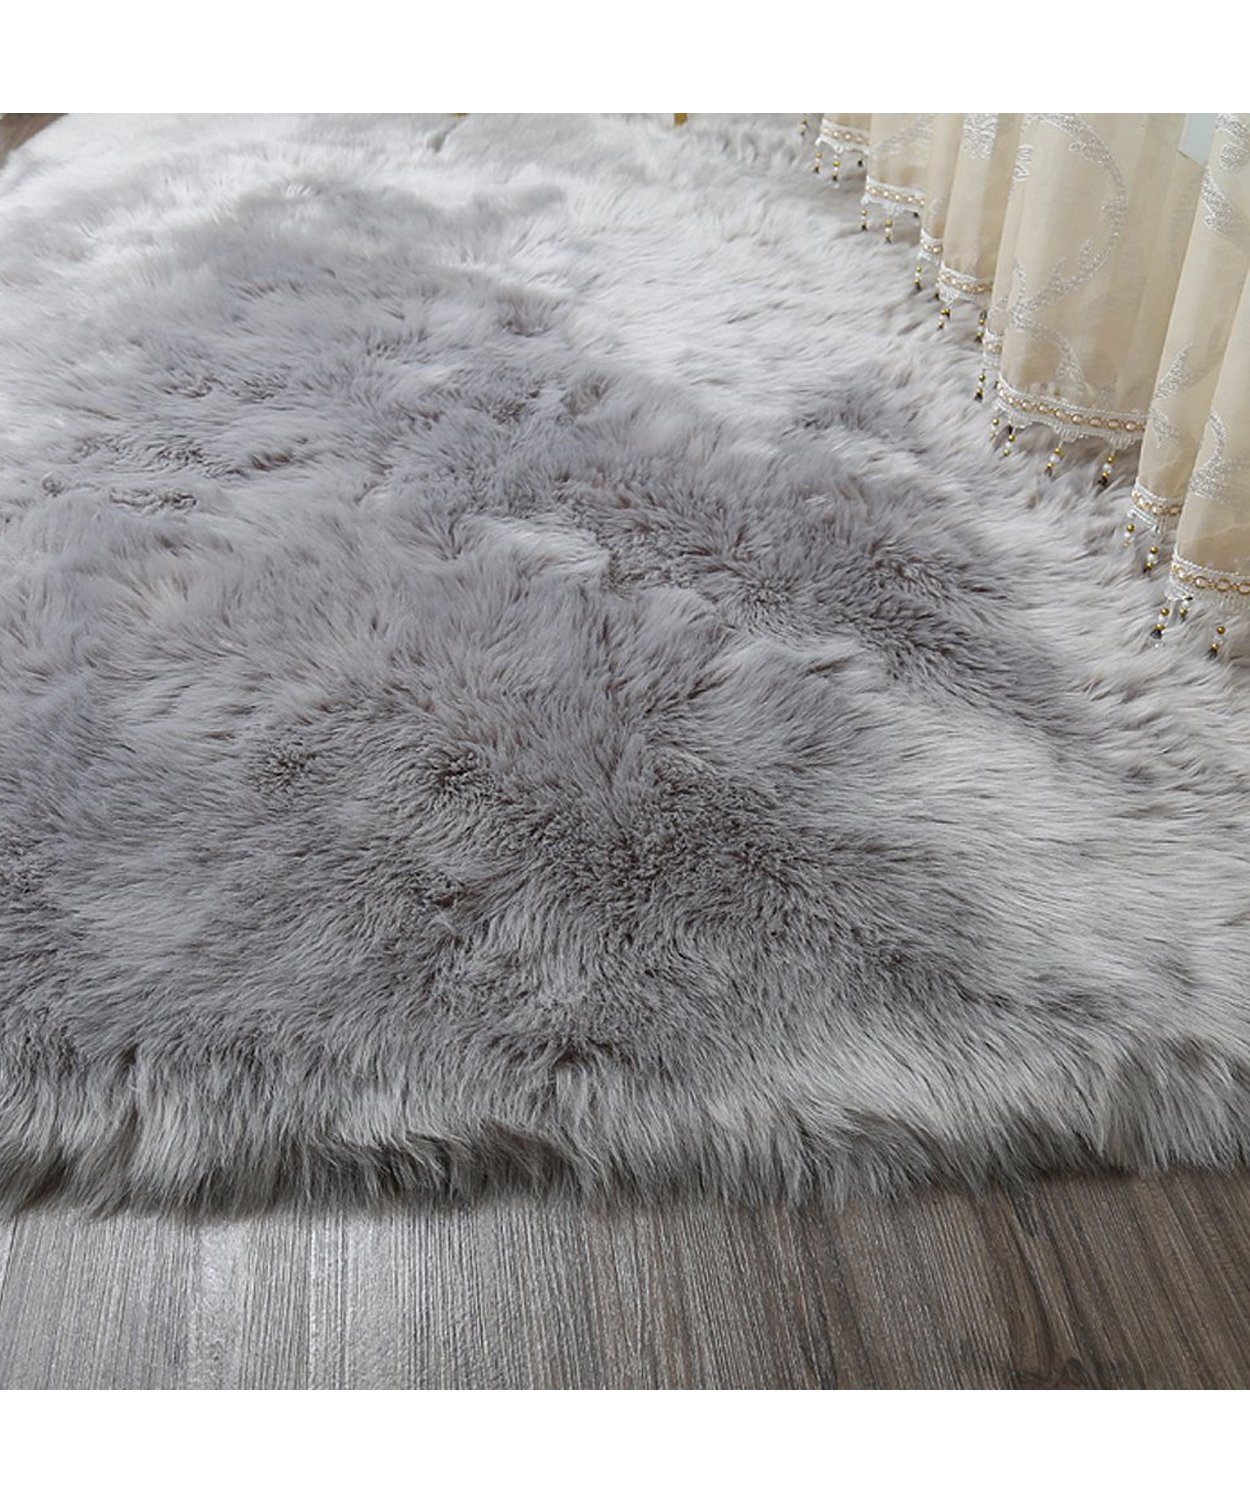 Amazon.com: GIANCO FERRO Rectangle Sheepskin Rug Super Soft Fluffy Area Rug Vanity Chair Cover Rug/Solid Shaggy Area Rugs For Living Bedroom Floor - Grey ...